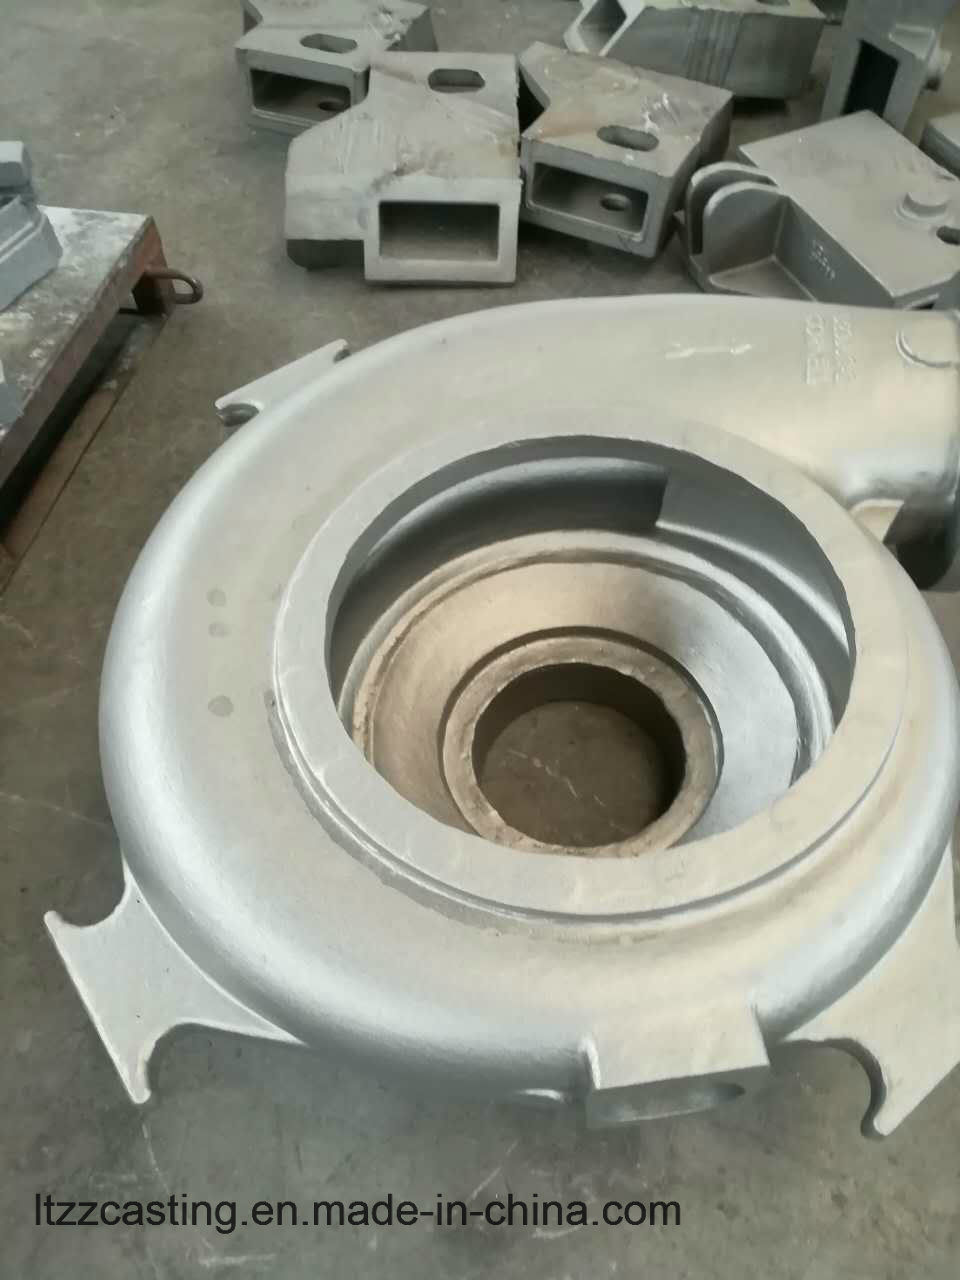 Pump Part Ss316 260kgs Steel Sand Casting